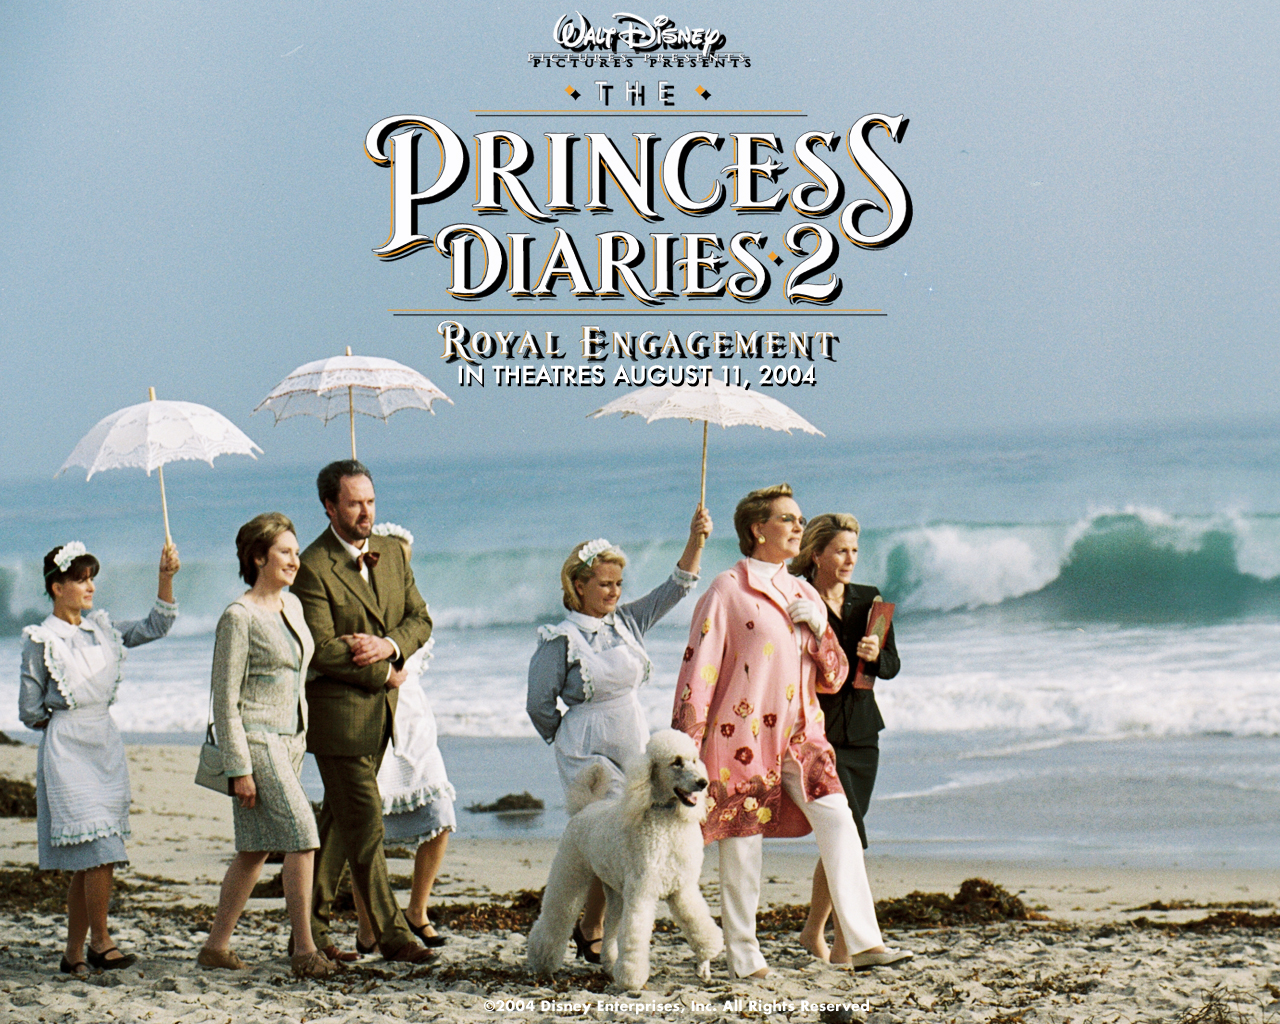 Anne Hathaway in The Princess Diaries 2- Royal Engagement Wallpaper 1280 960